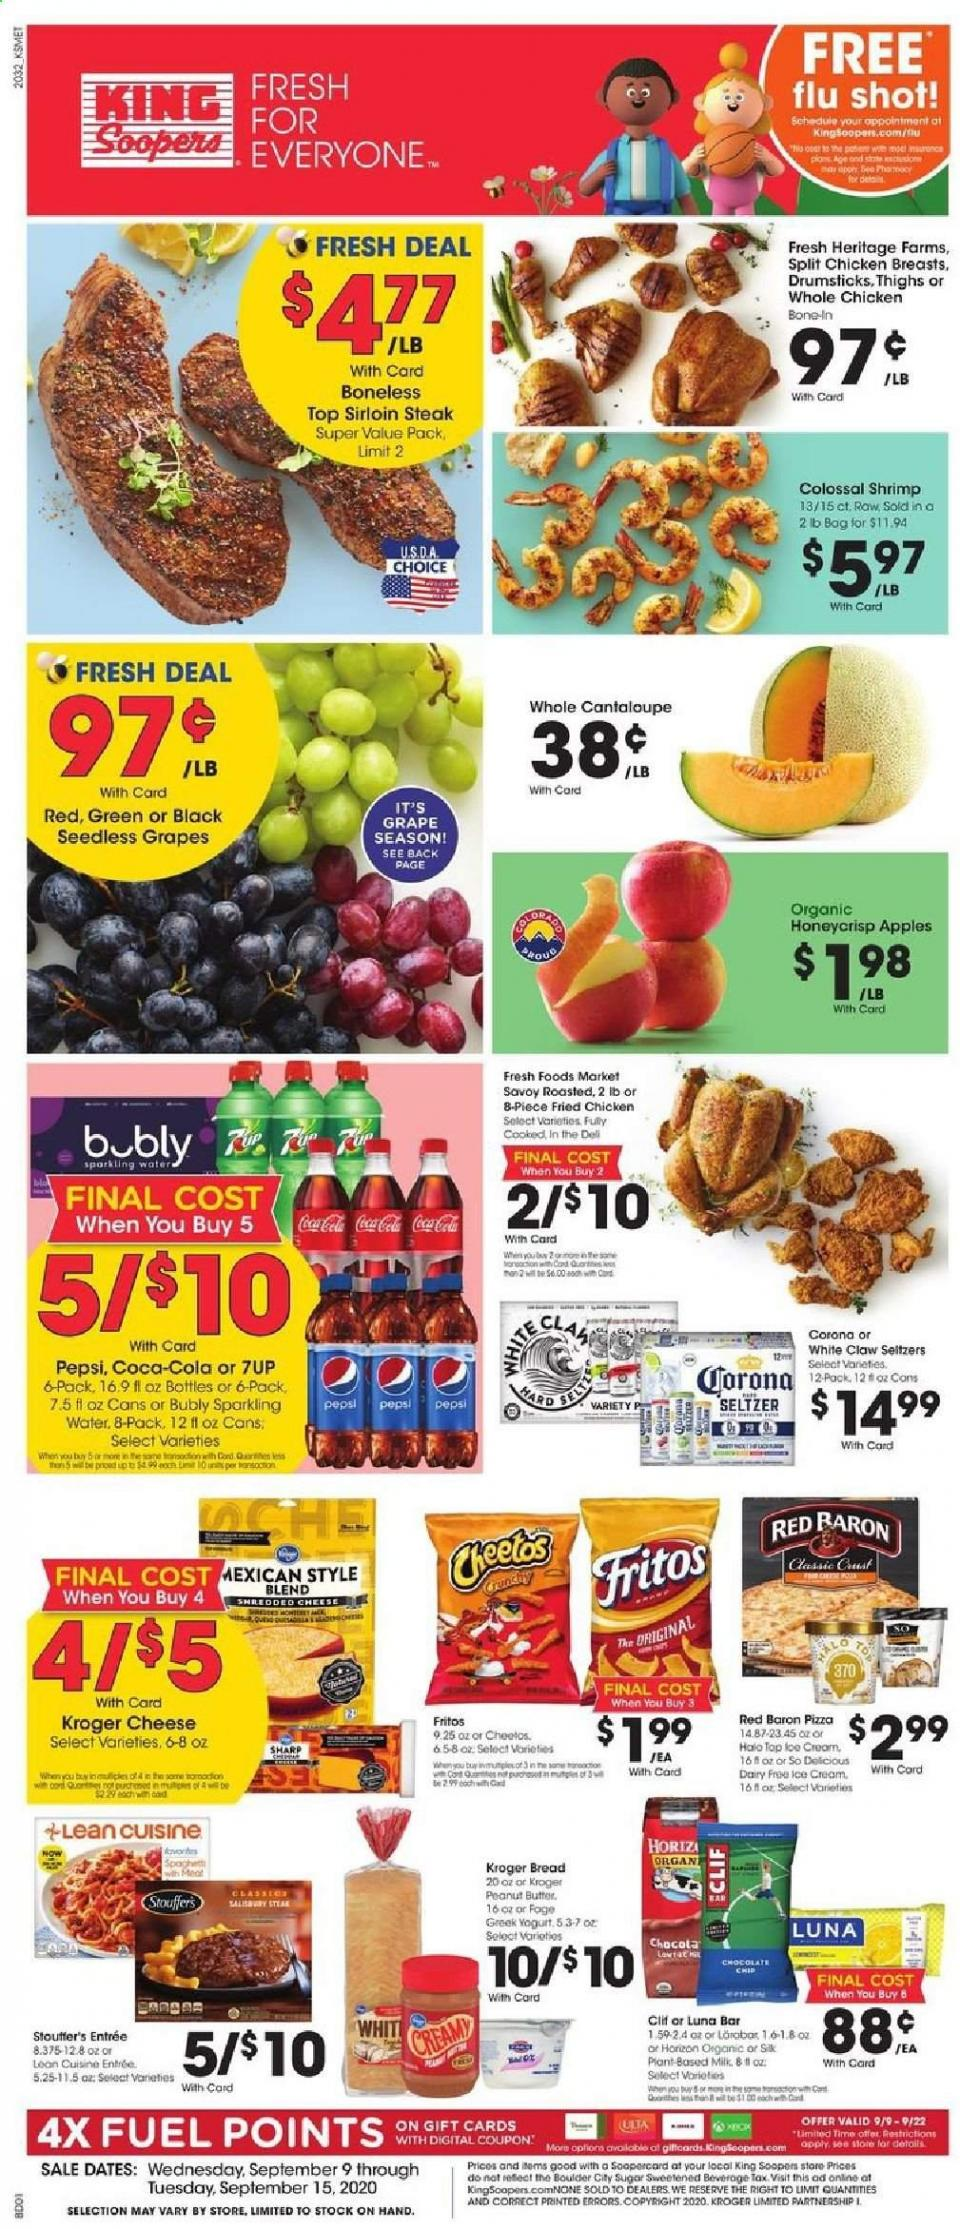 King Soopers Mid-September Weekly Ad valid from Sep 9 – 15, 2020